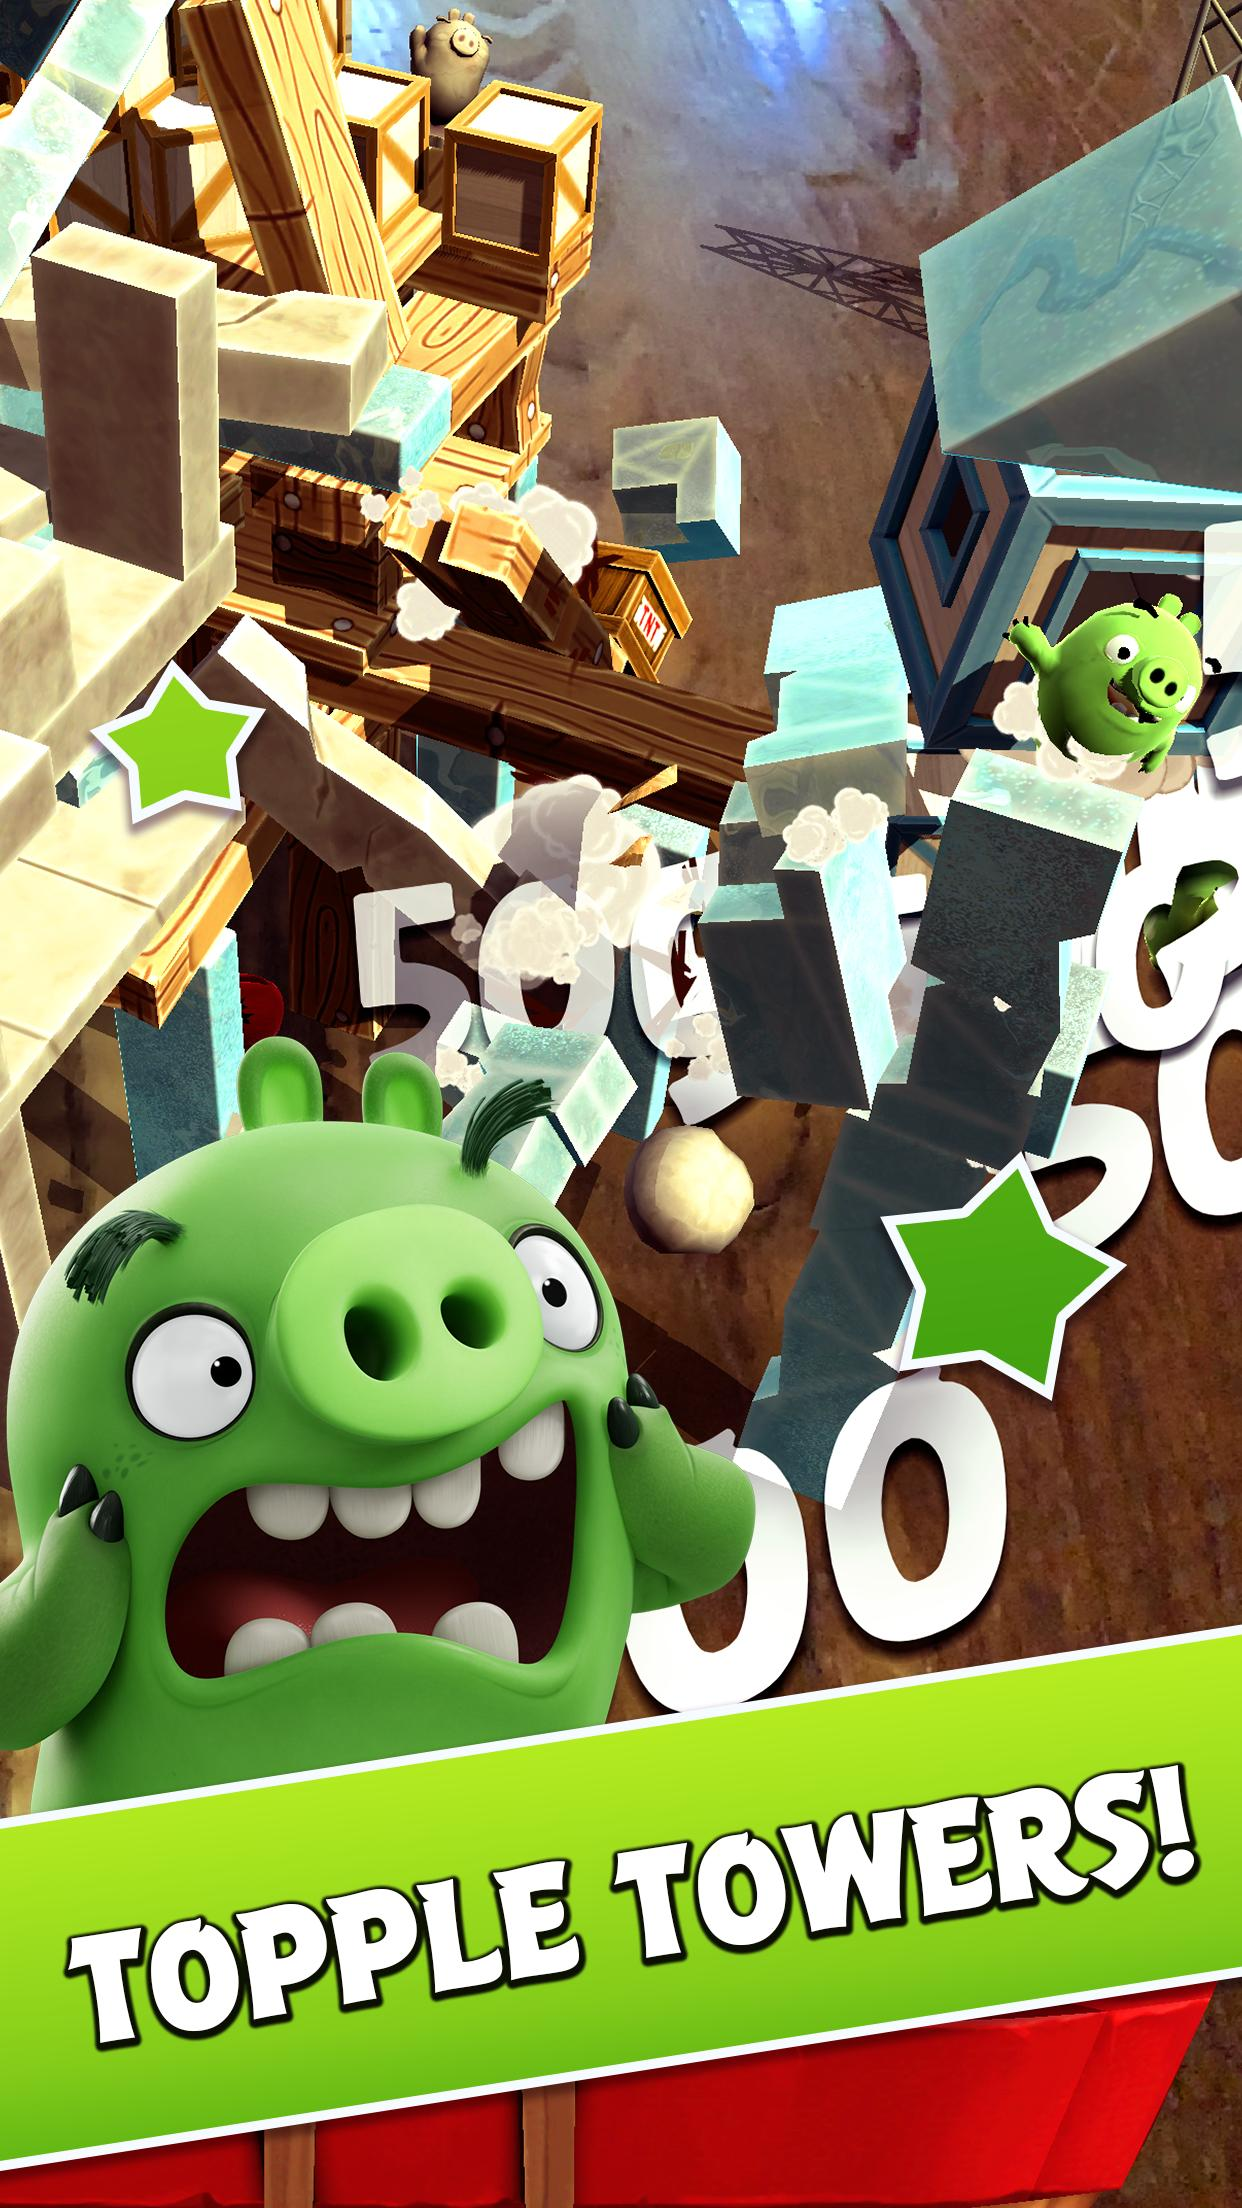 Angry Birds AR: Isle of Pigs 1.1.2.57453 Screenshot 4